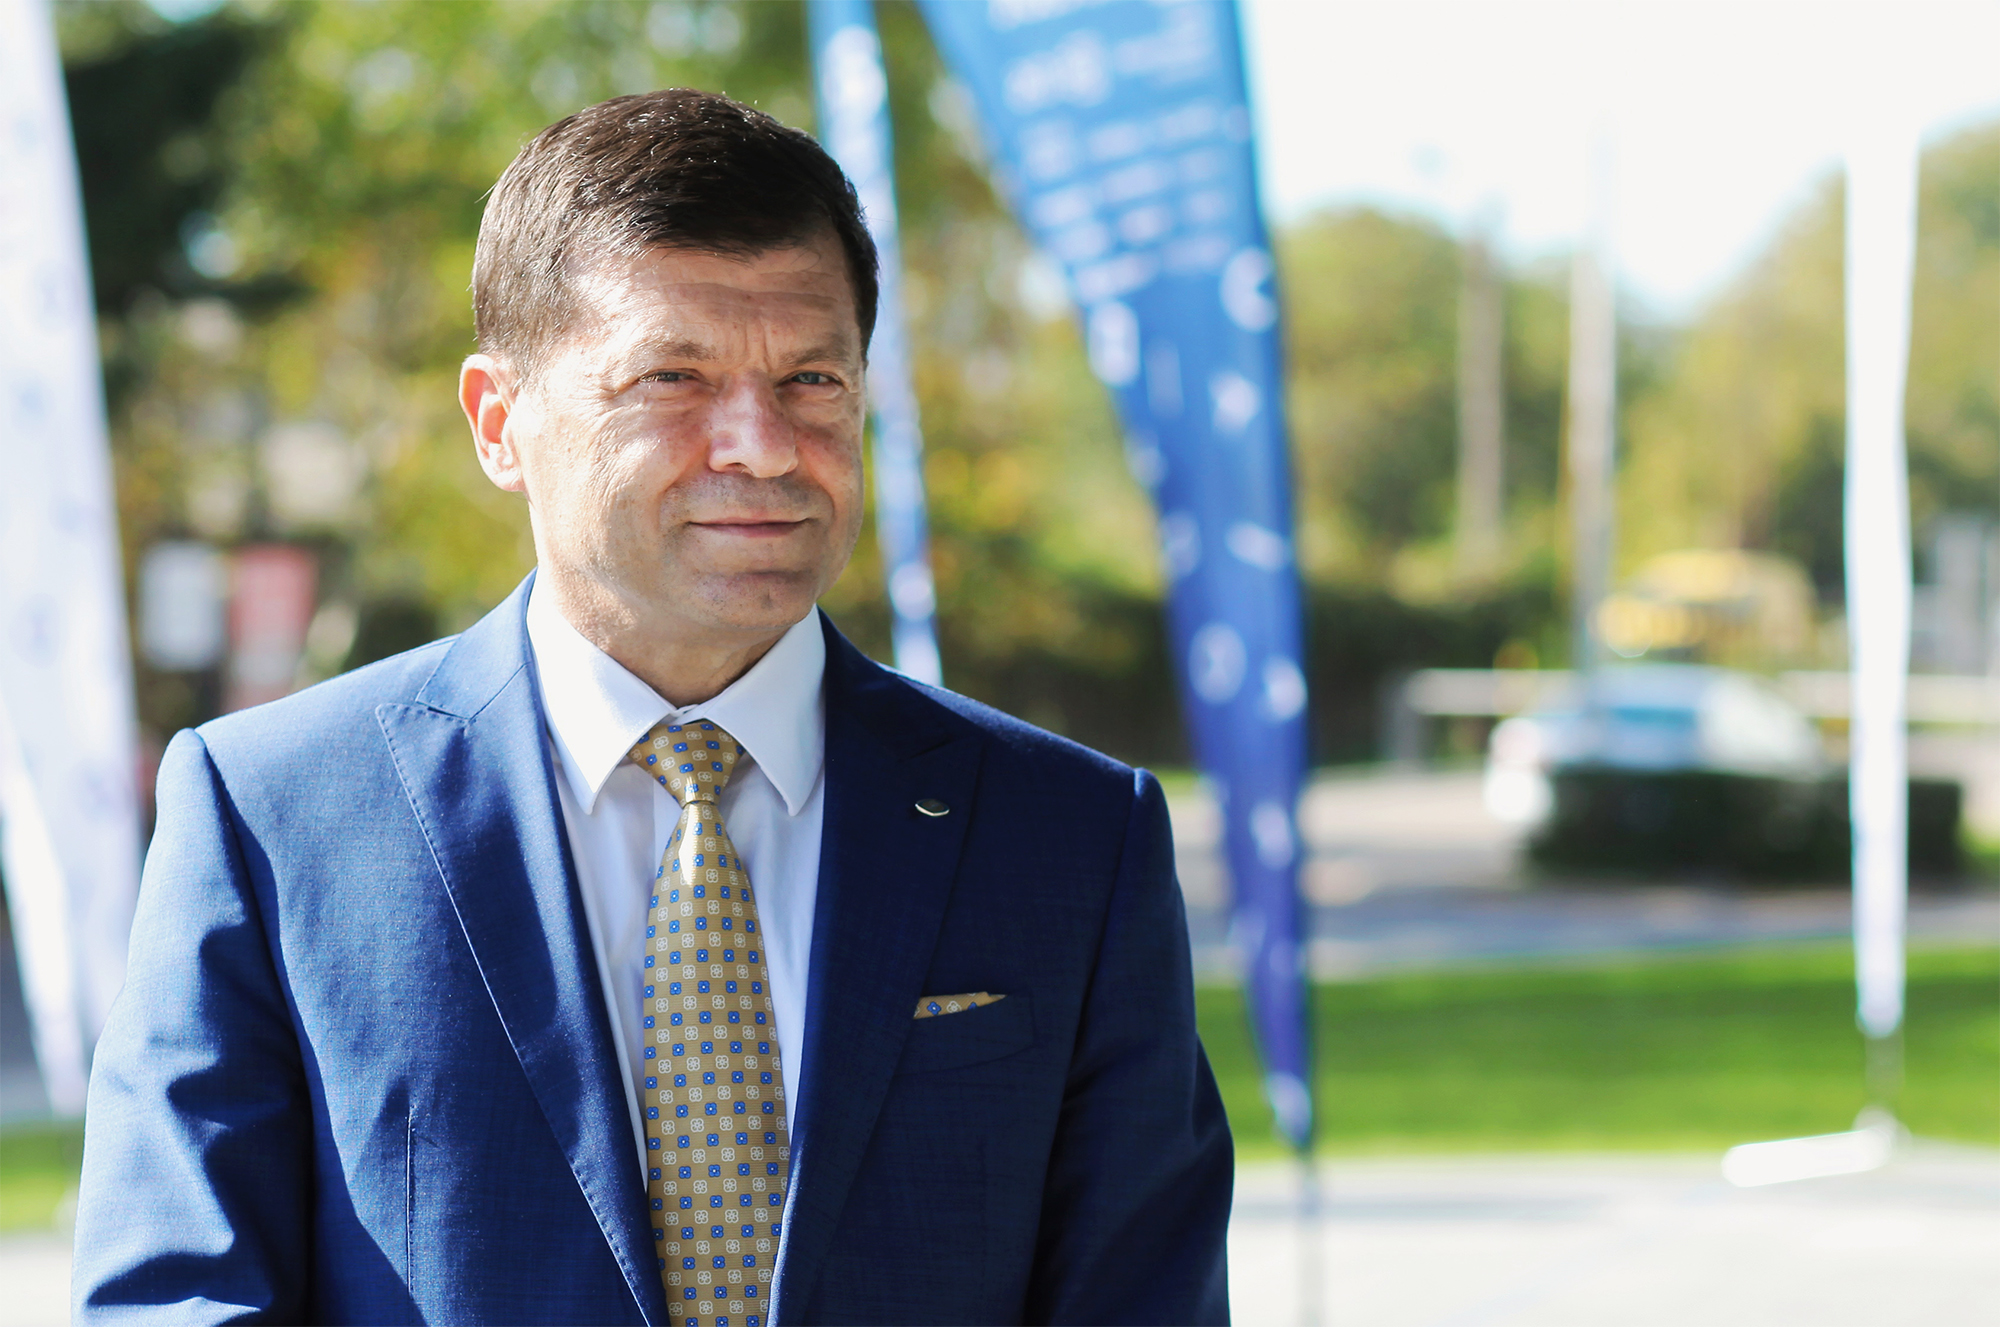 INTERVIEW - Bosnia's Lanaco launches ITivity academy to beat skilled staff shortage